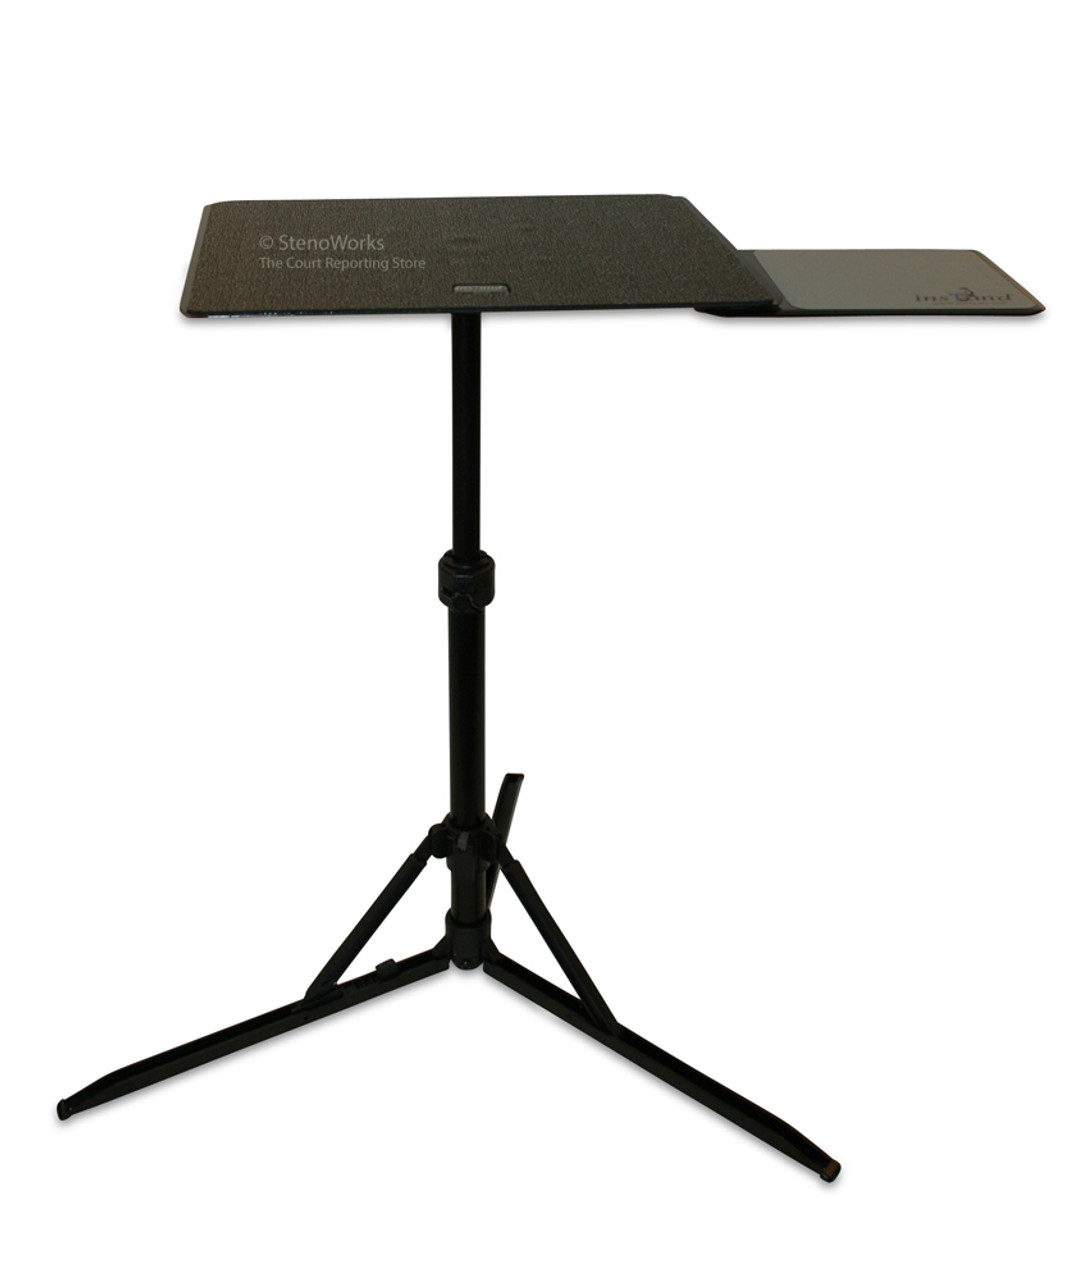 Image Result For X Style Keyboard Stand